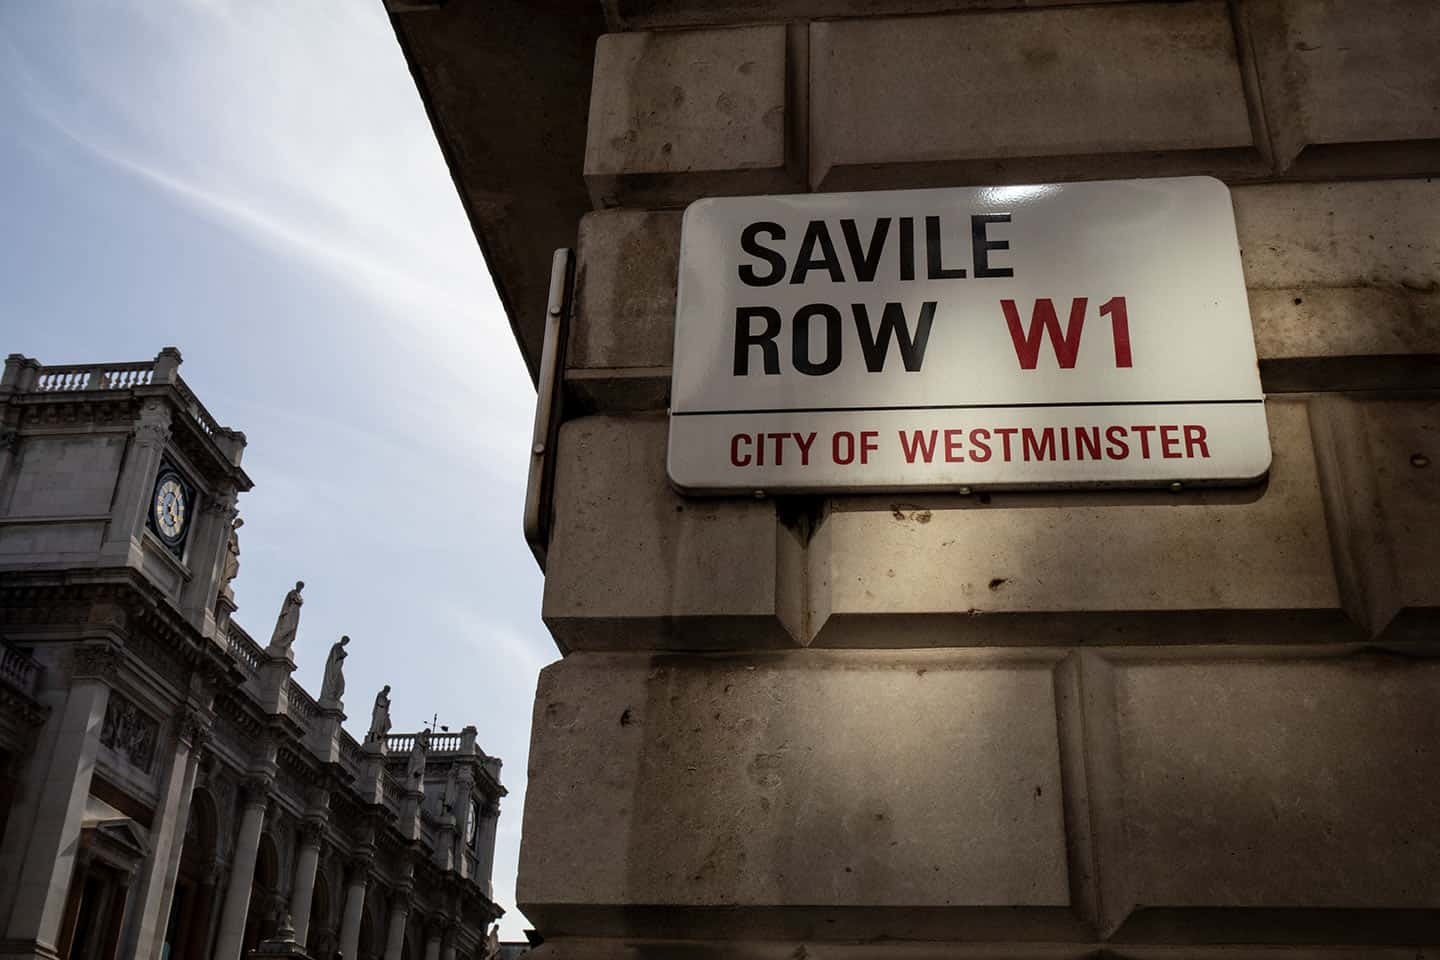 Image of the Savile Row street sign in Mayfair, London